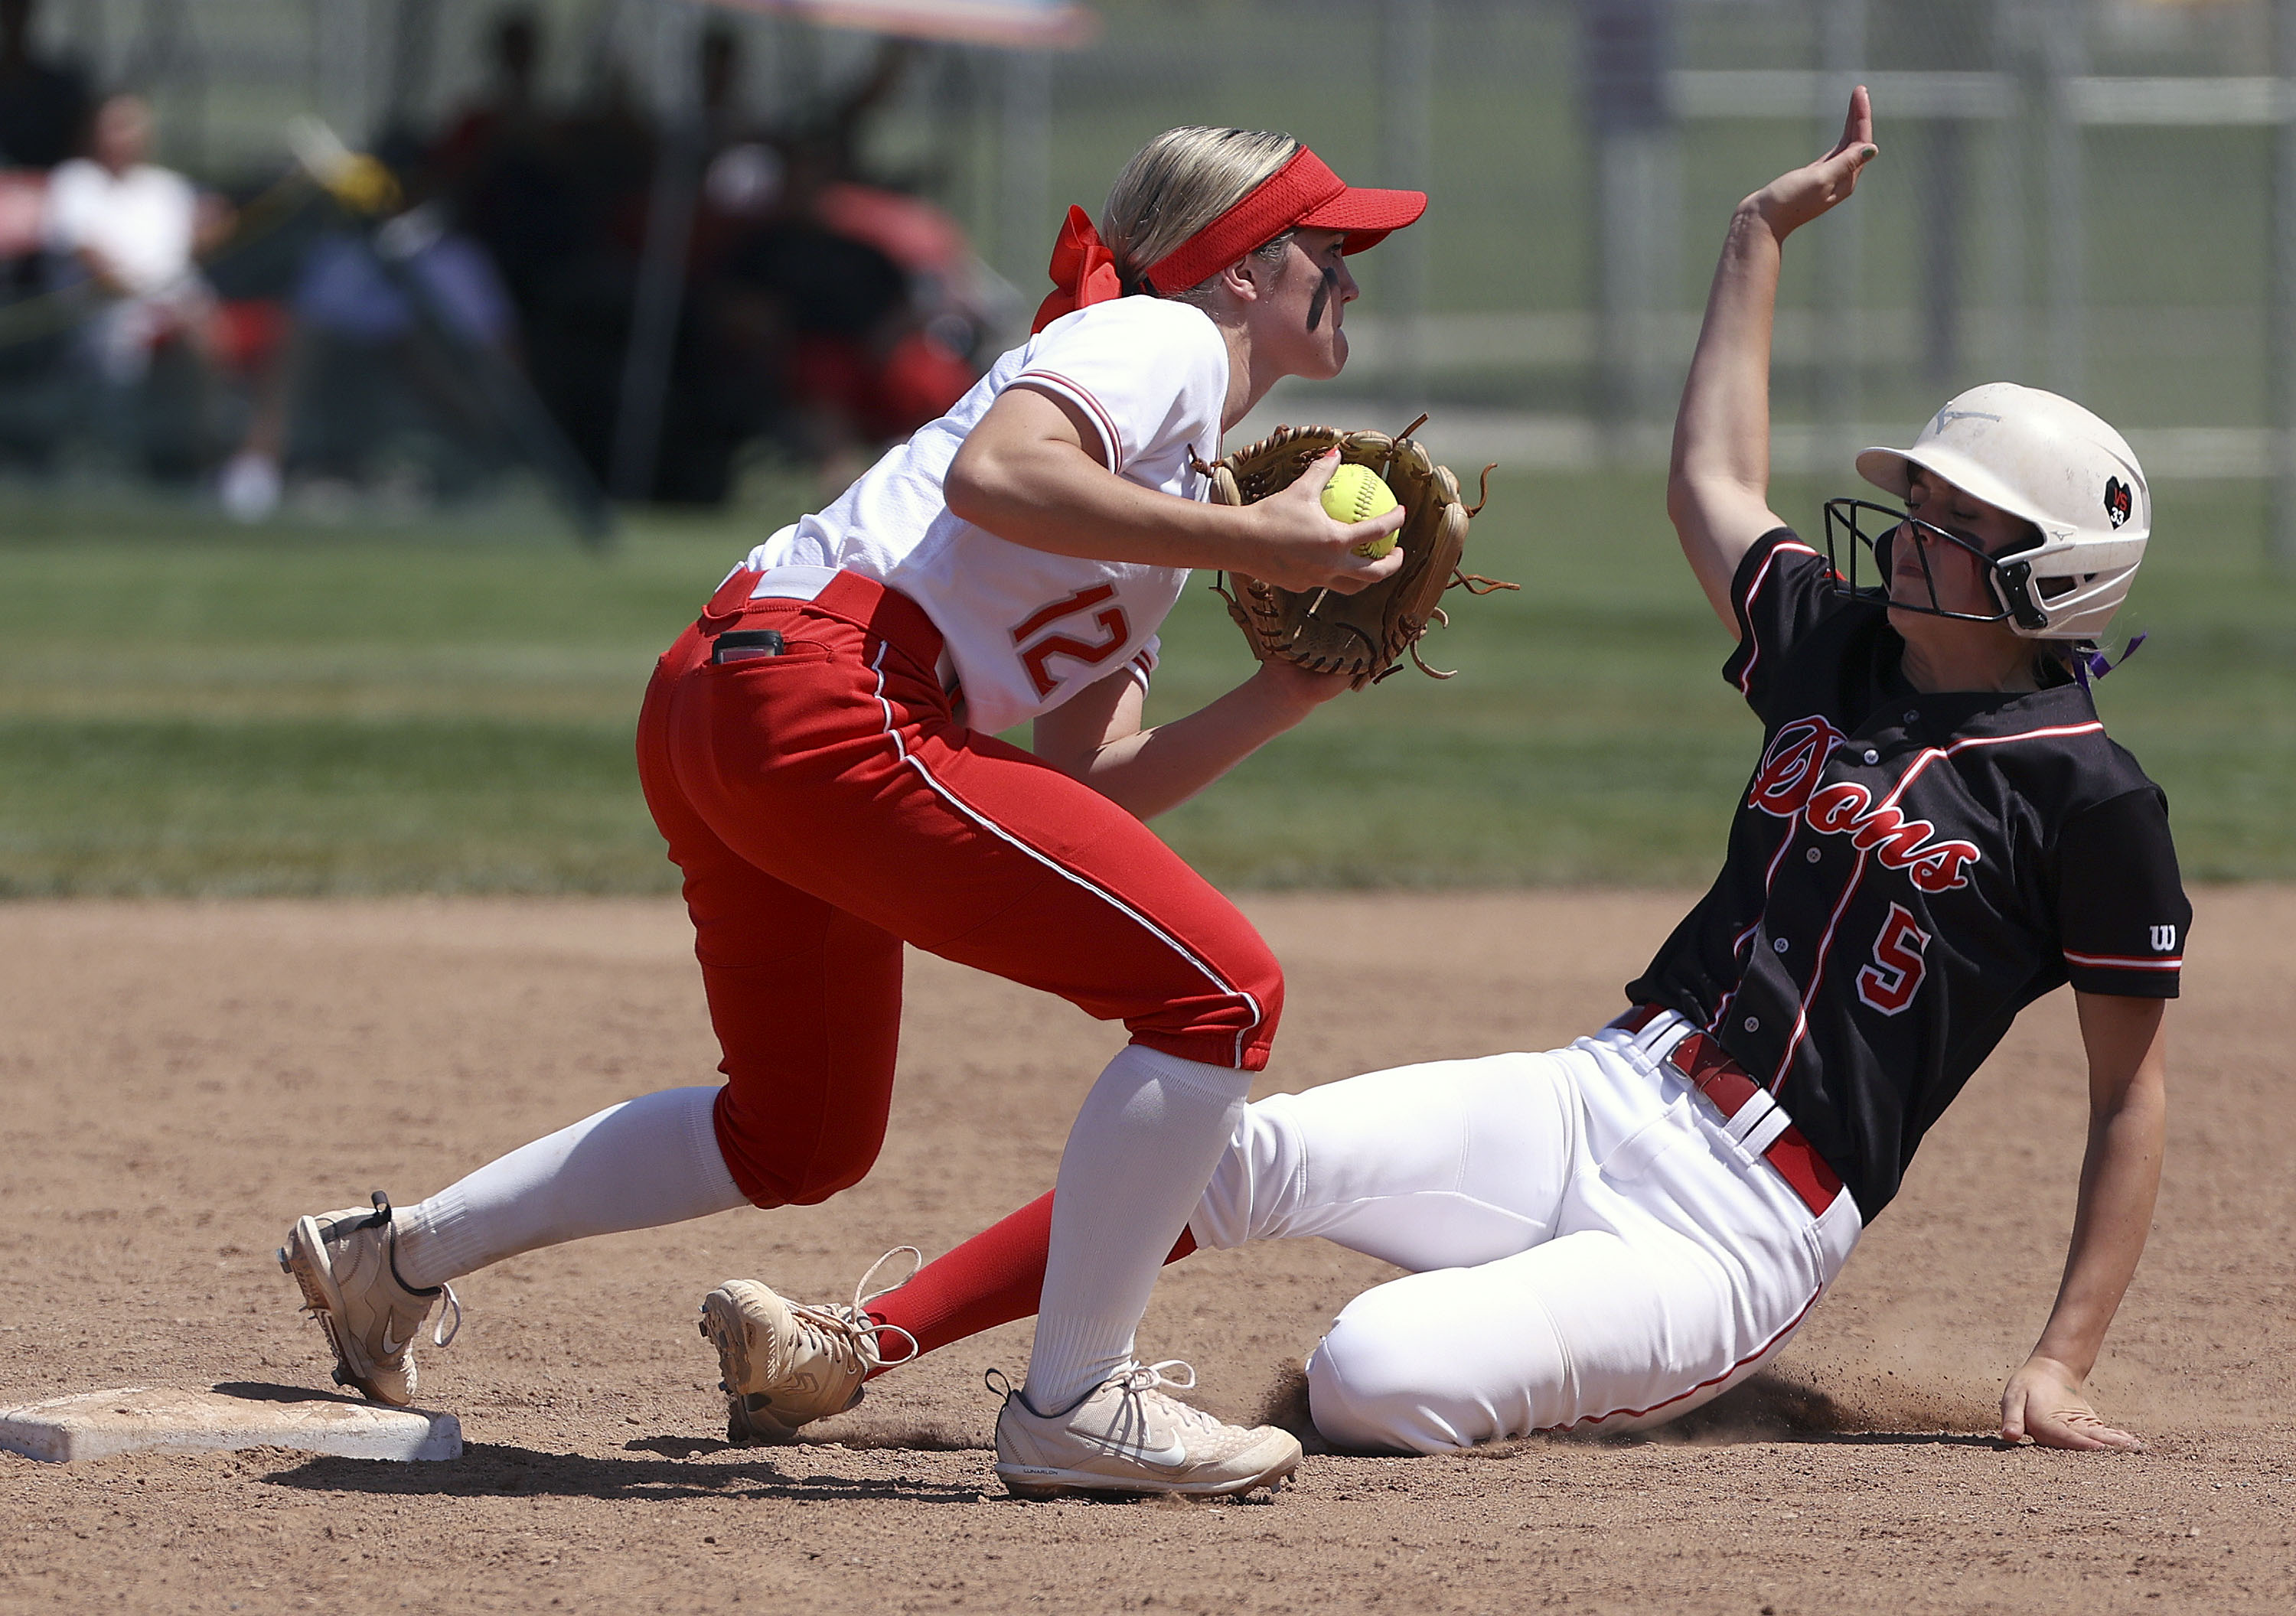 Spanish Fork plays Mountain Ridge's Tessa Hokanson gets Spanish Fork's Avery Sapp out at second base during the 5A championship softball game at Spanish Fork Sports Park in Spanish Fork on Friday, May 28, 2021. Spanish Fork won 13-2.